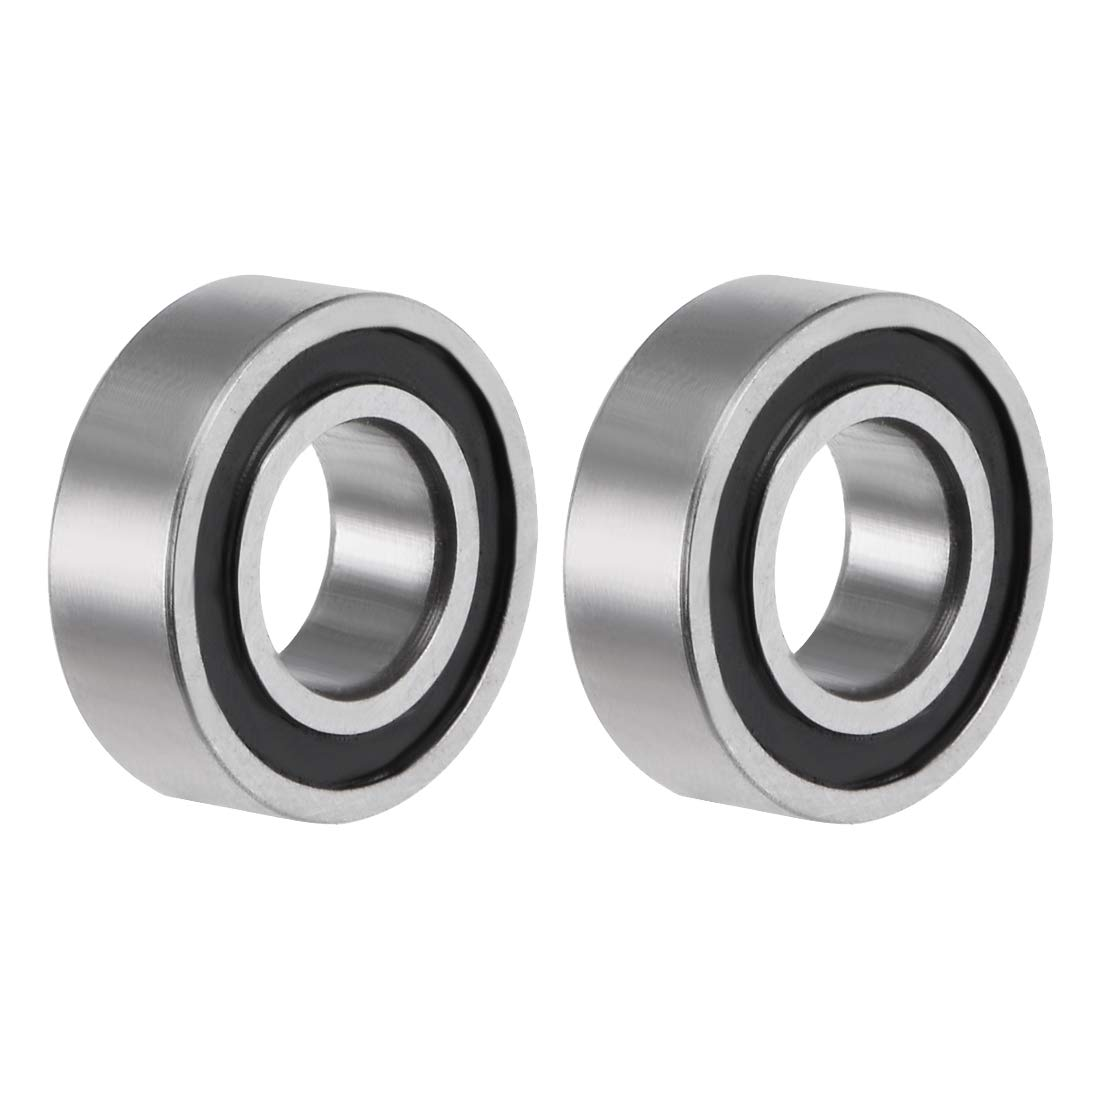 uxcell R4-2RS Deep Groove Ball Bearing 1//4x5//8x0.196 Double Sealed ABEC-3 Bearings 2-Pack